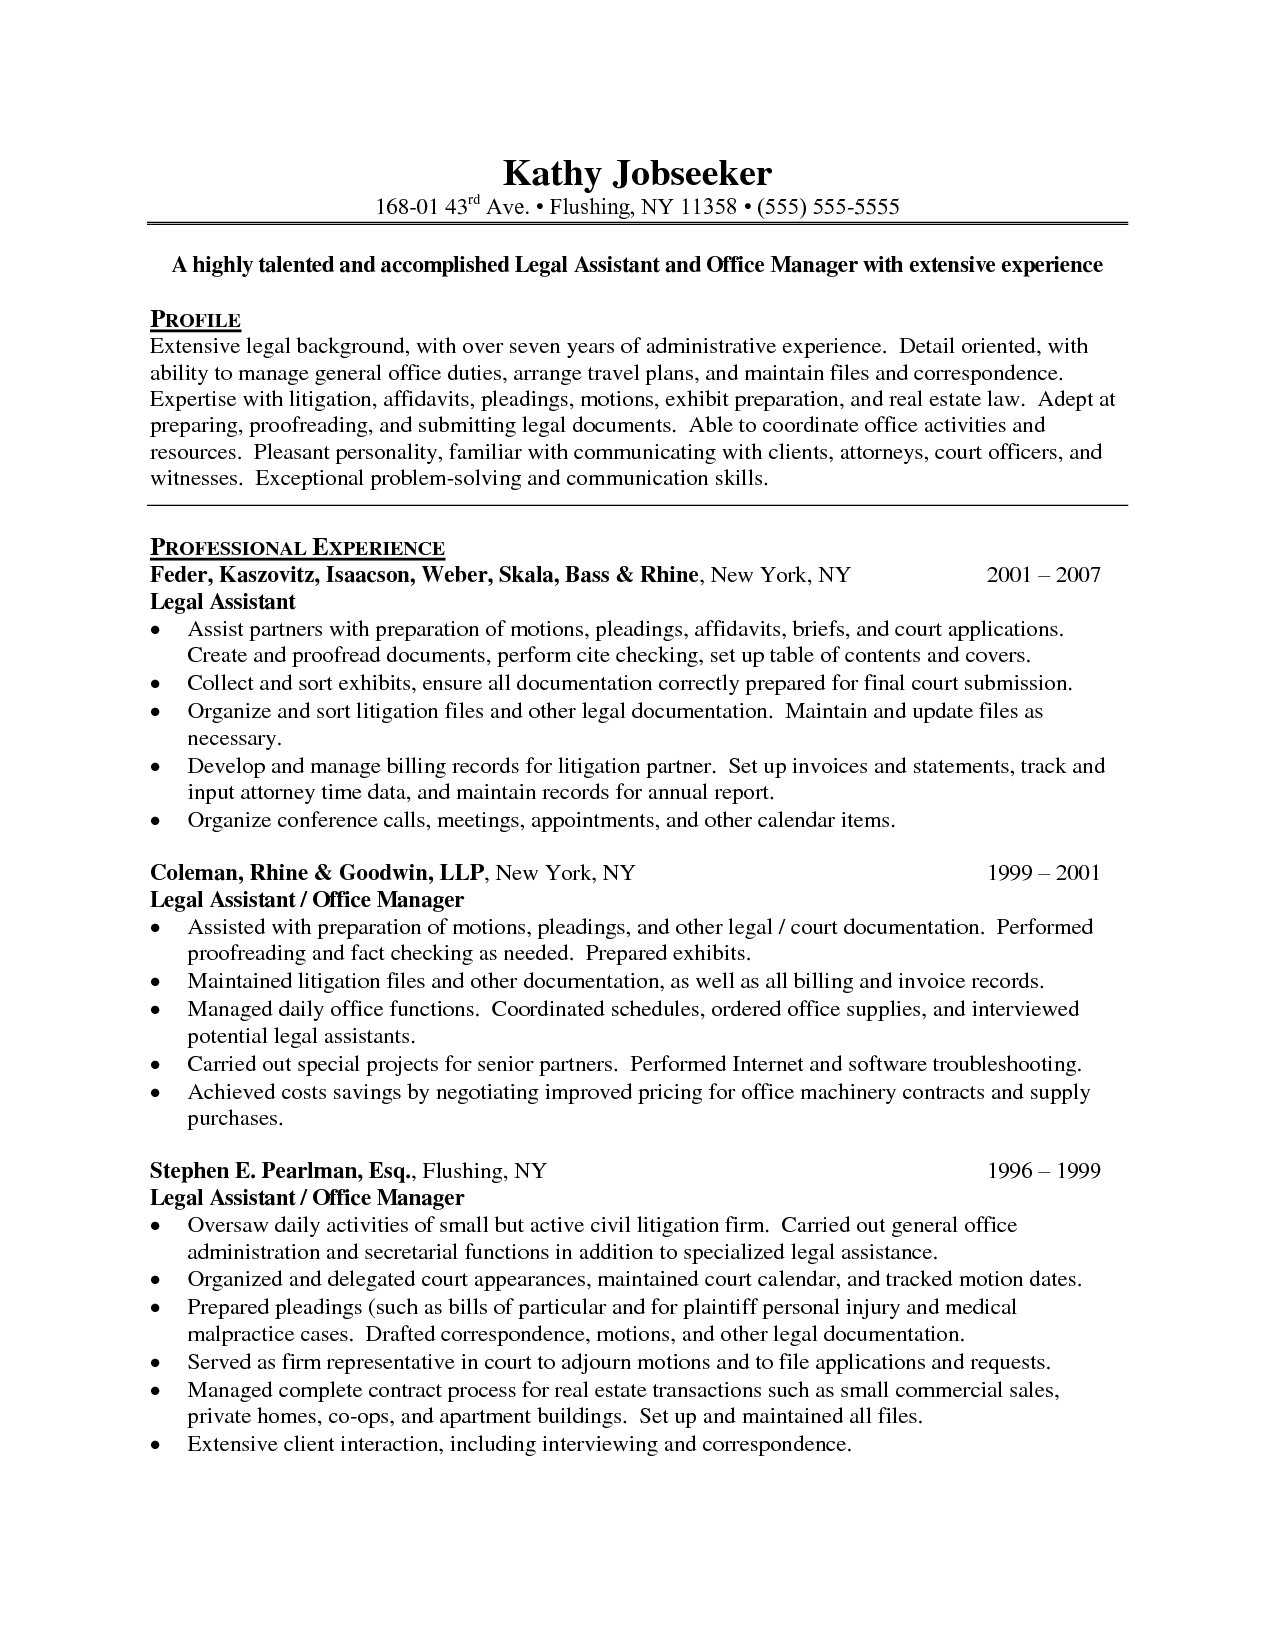 Health Law Attorney Cover Letter Transplant Social Worker Sample